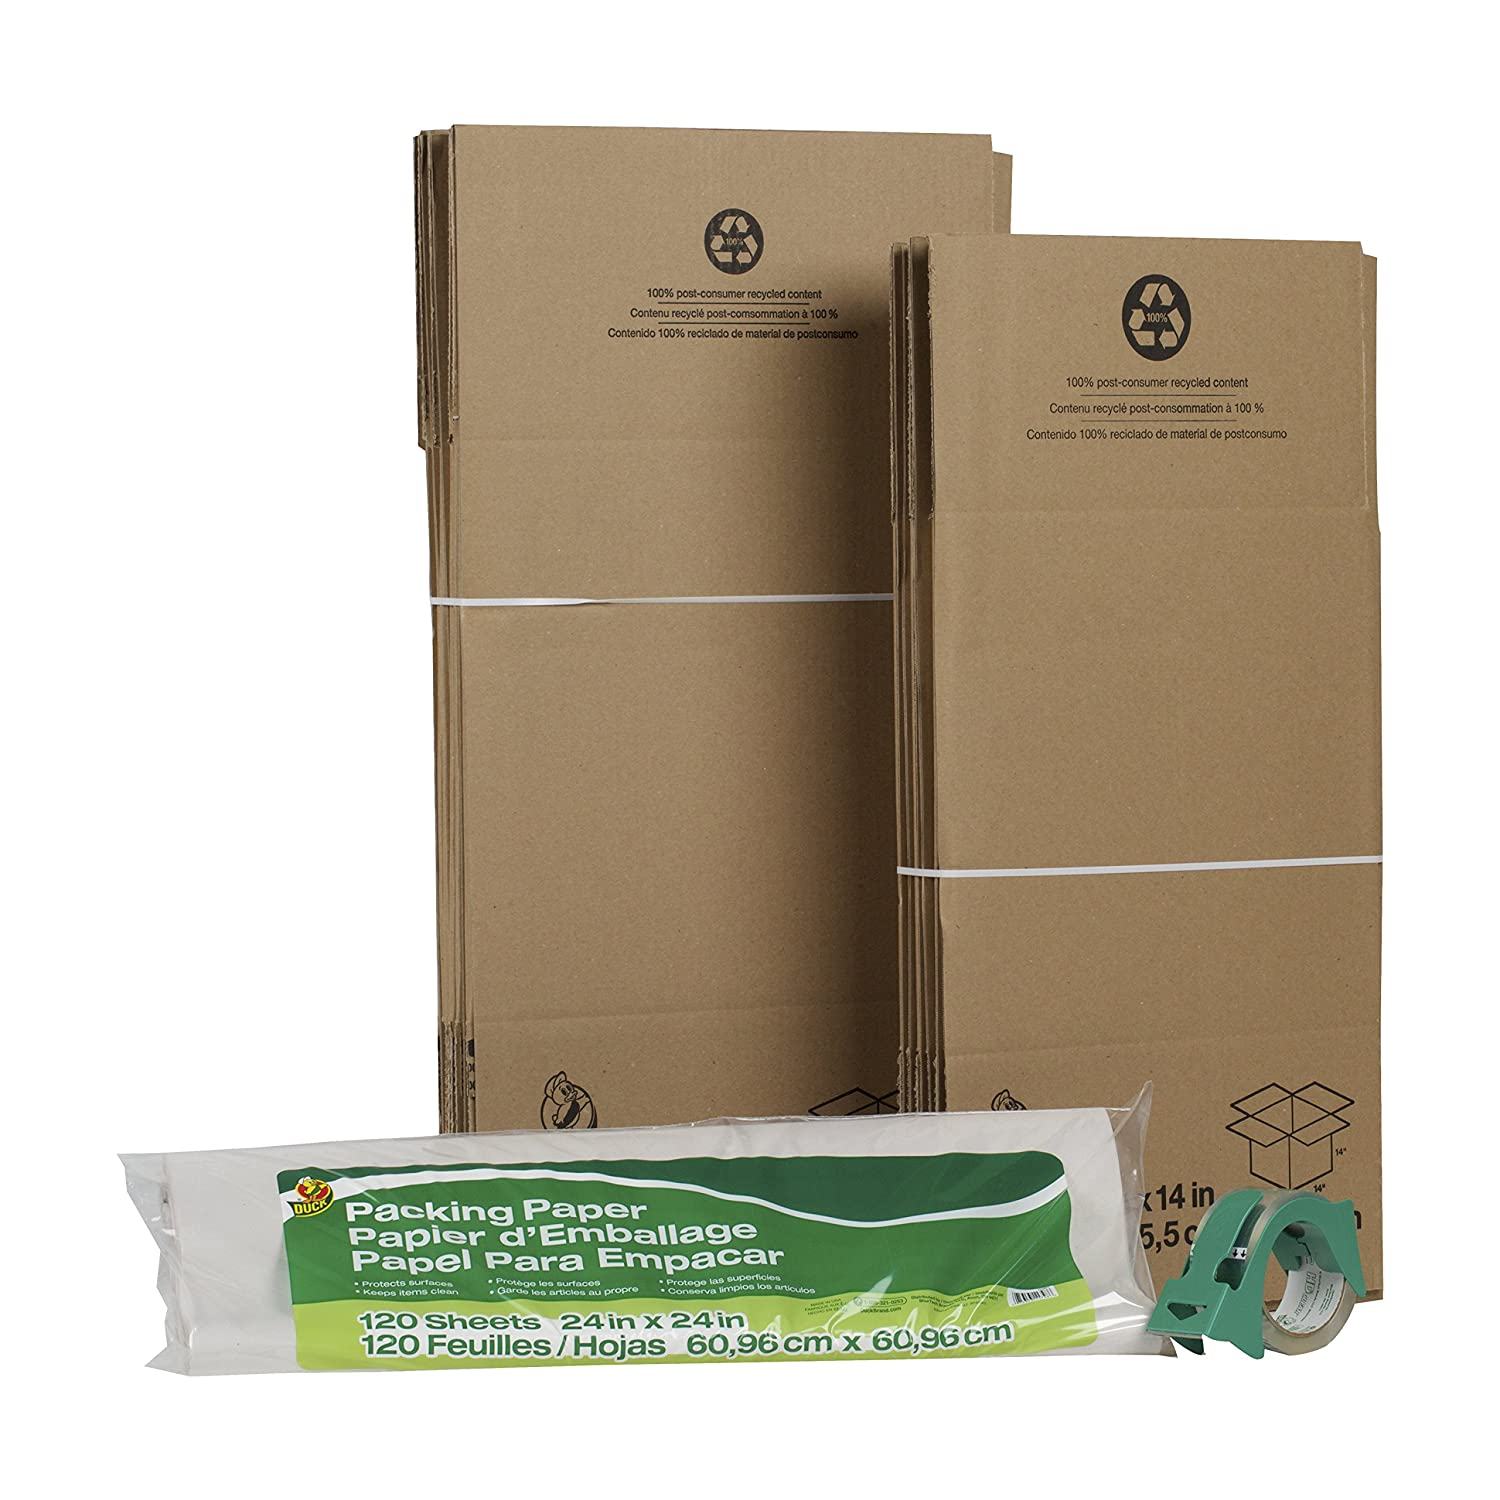 Duck Brand Moving Kit with 12 Boxes, 120 Sheets Packing Paper, 1 Roll HD Clear Packing Tape (280378) 120-Sheets Packing Paper